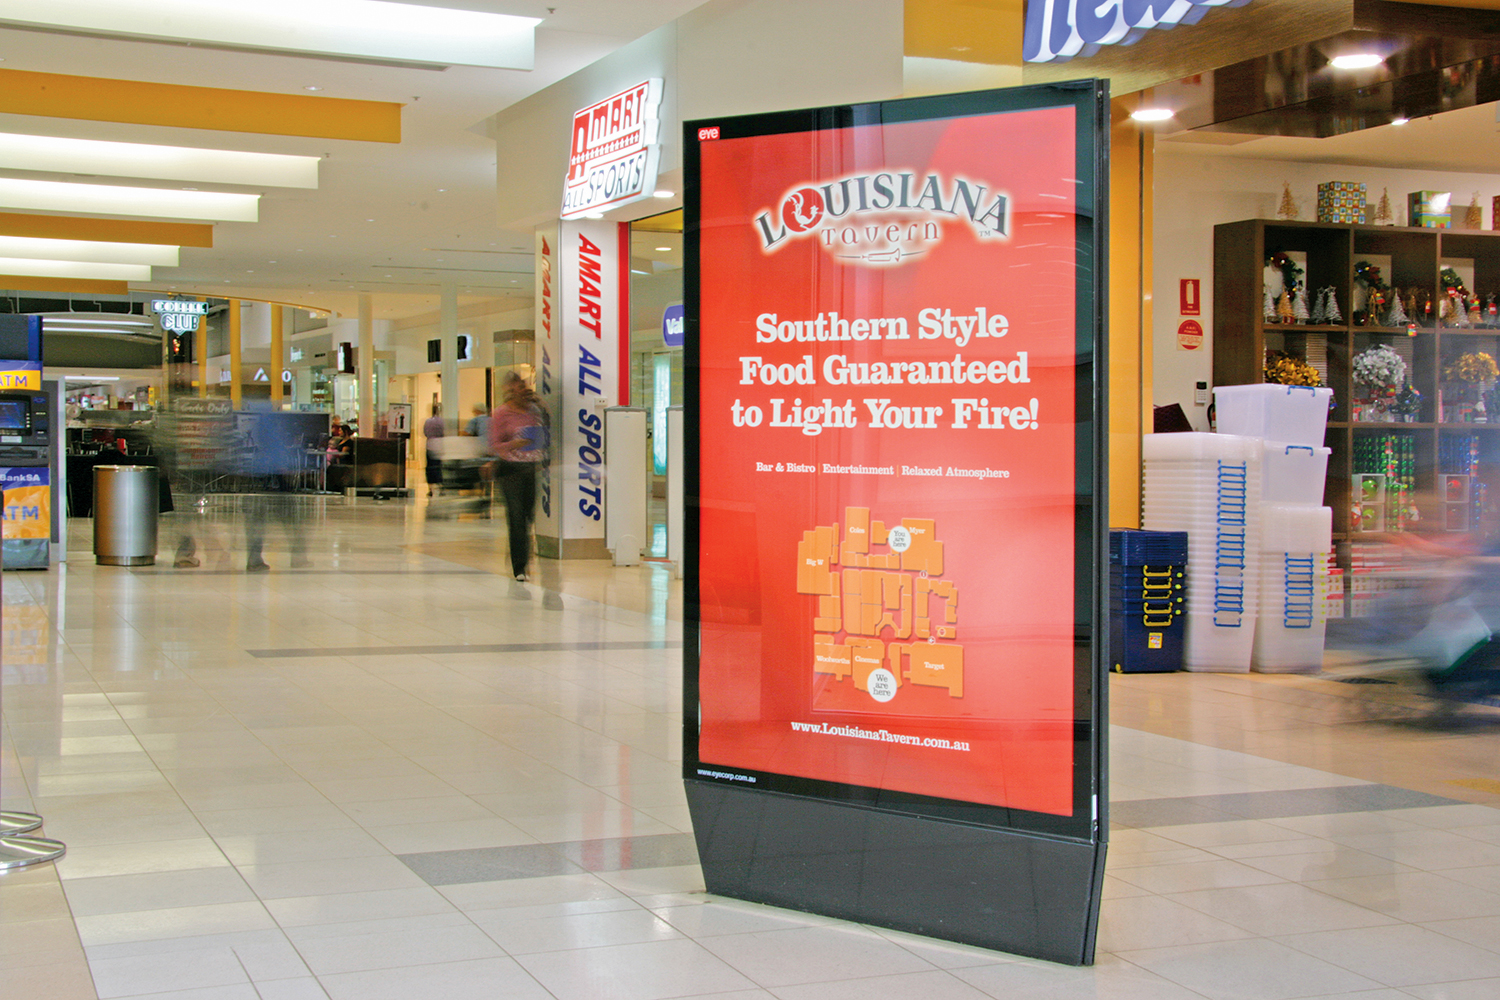 Louisiana Tavern shopping centre display